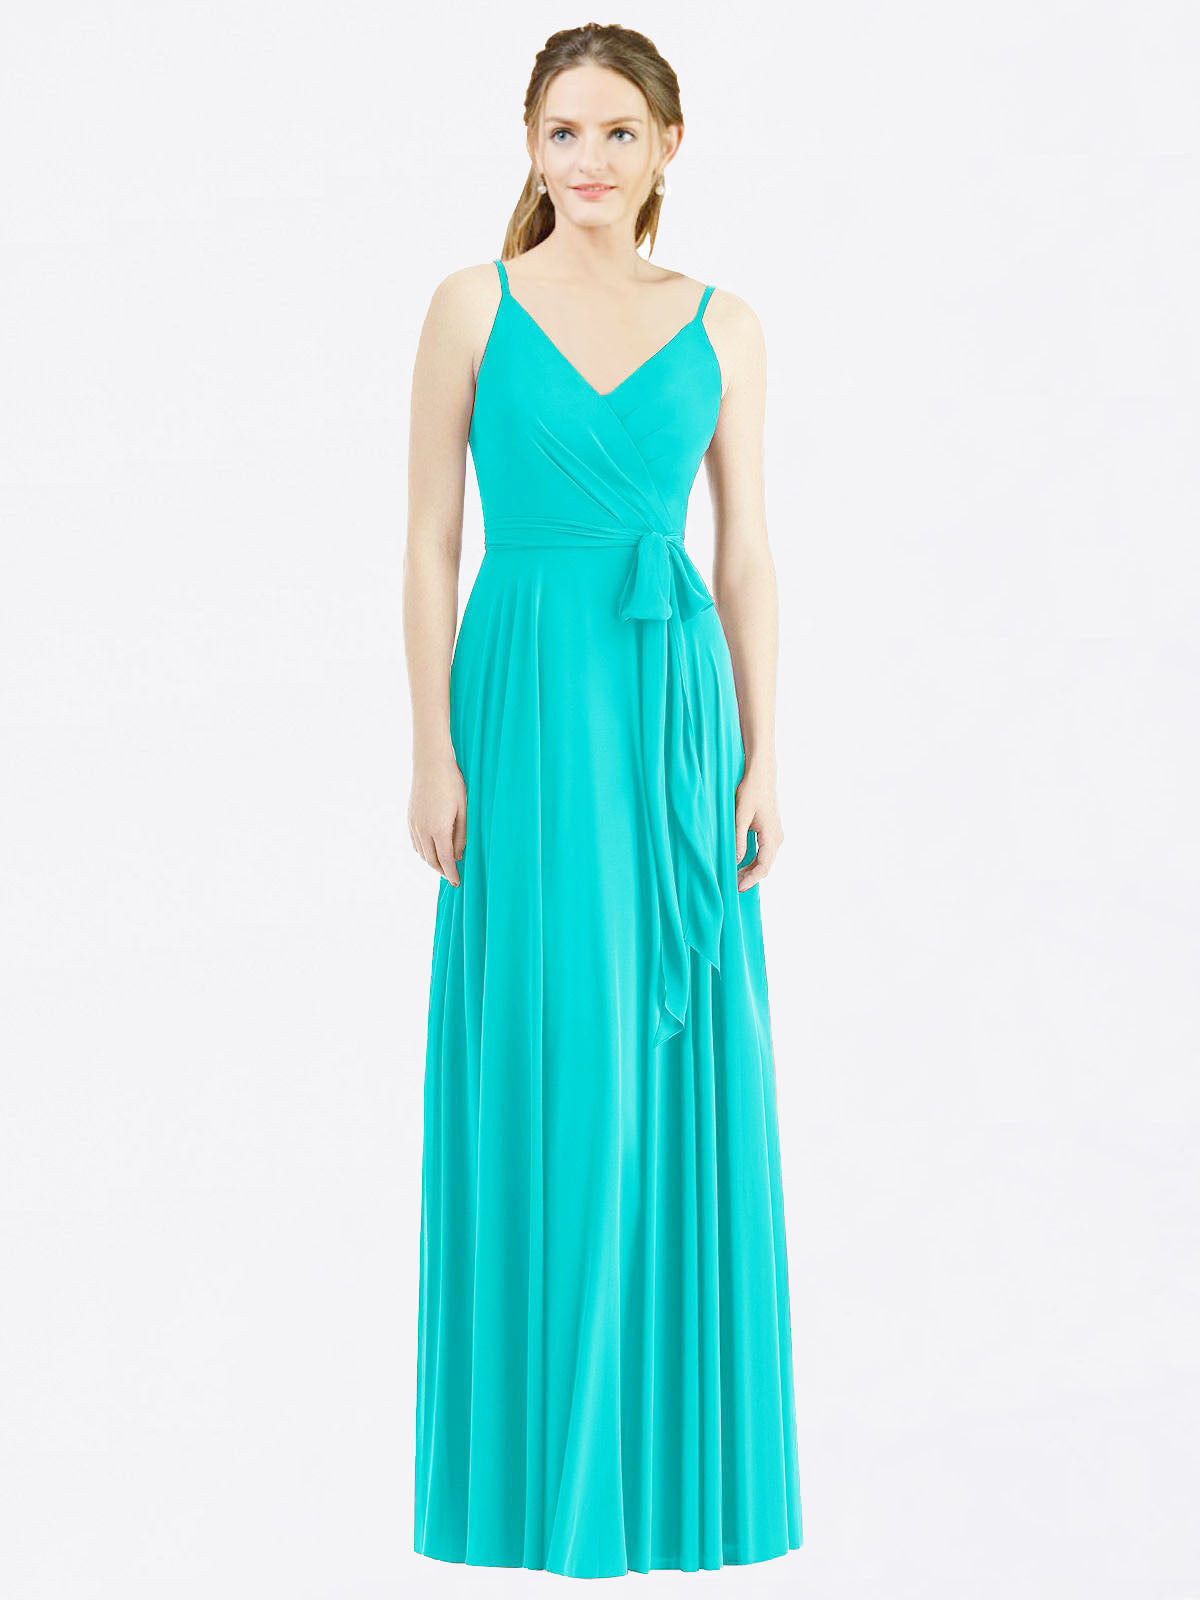 Long A-Line Spaghetti Straps, V-Neck Sleeveless Aqua Chiffon Bridesmaid Dress Madilyn